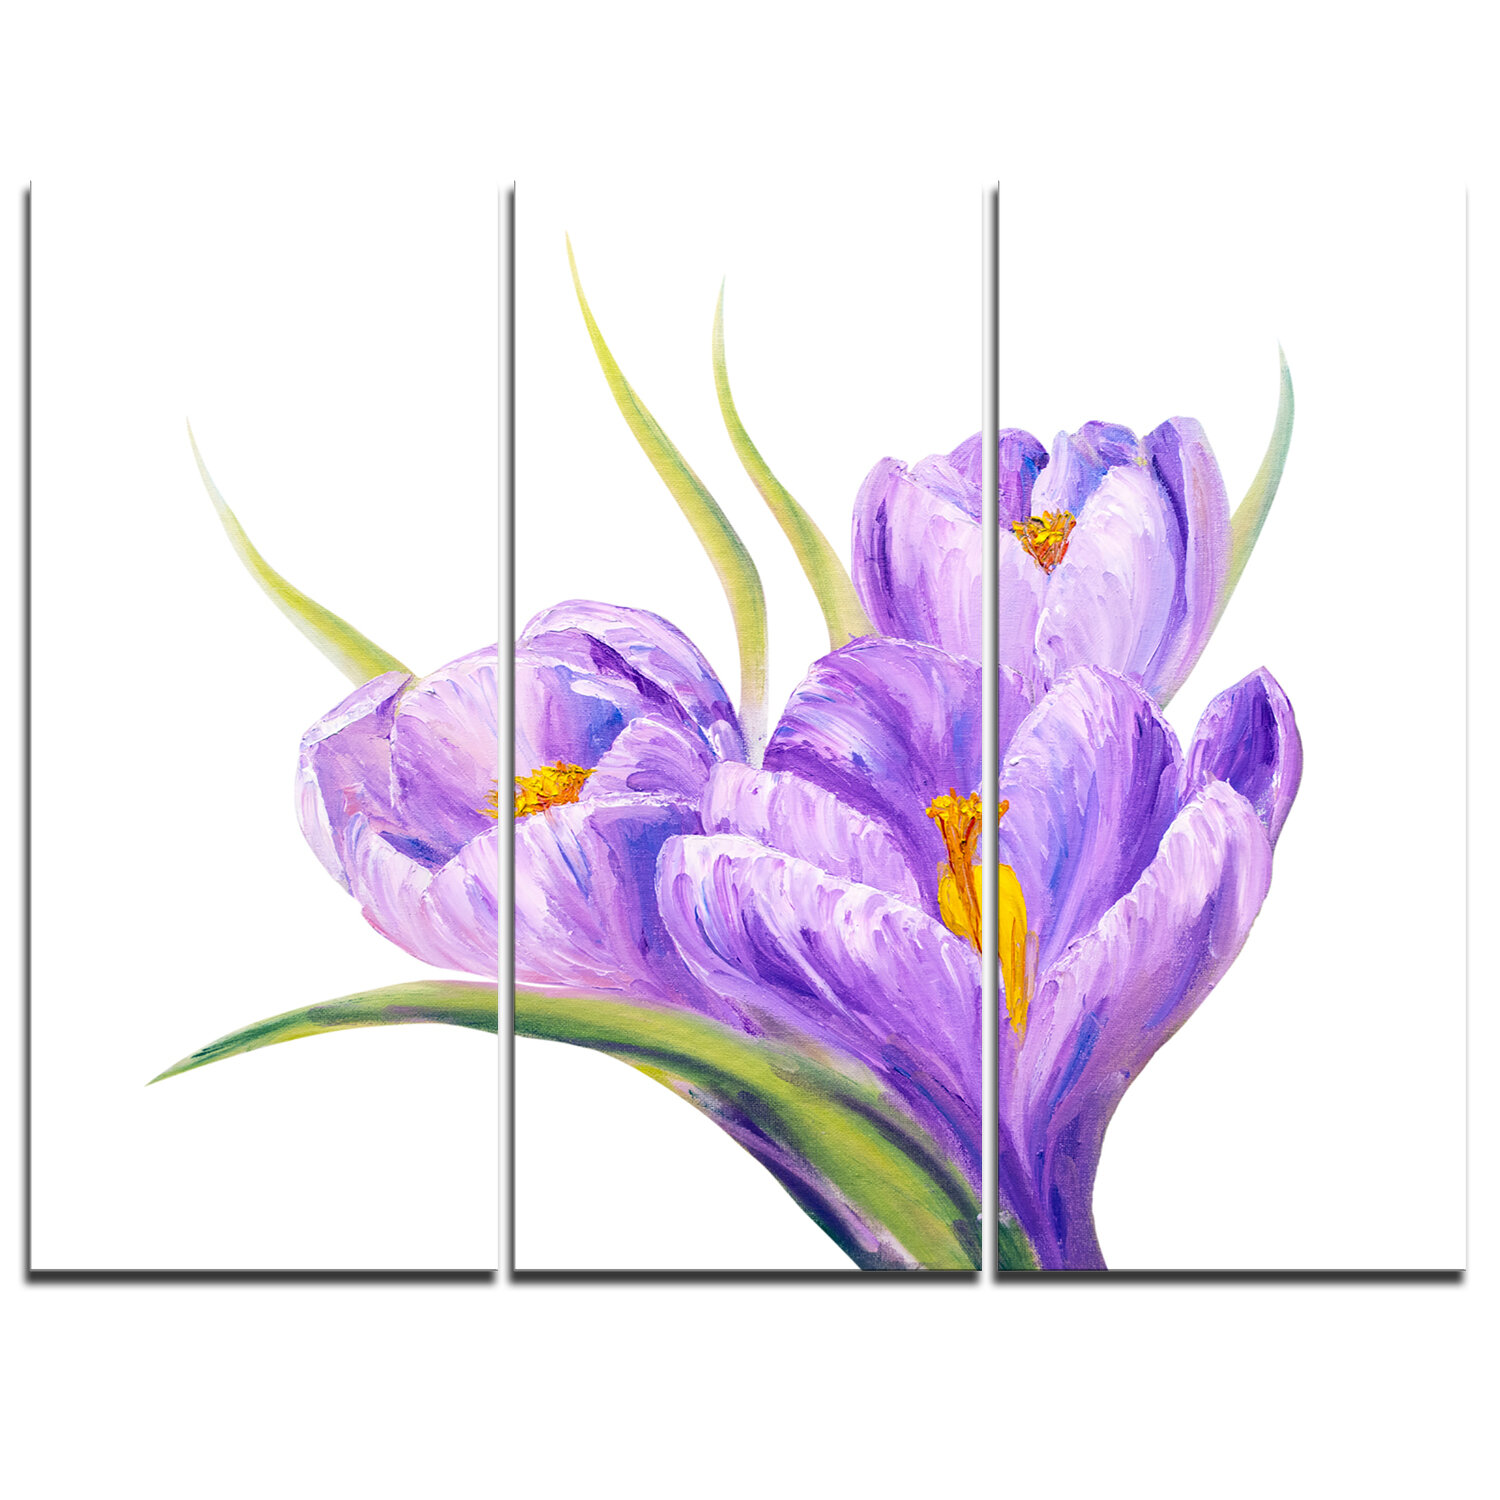 Designart Crocuses In White Background 3 Piece Painting Print On Wrapped Canvas Set Wayfair